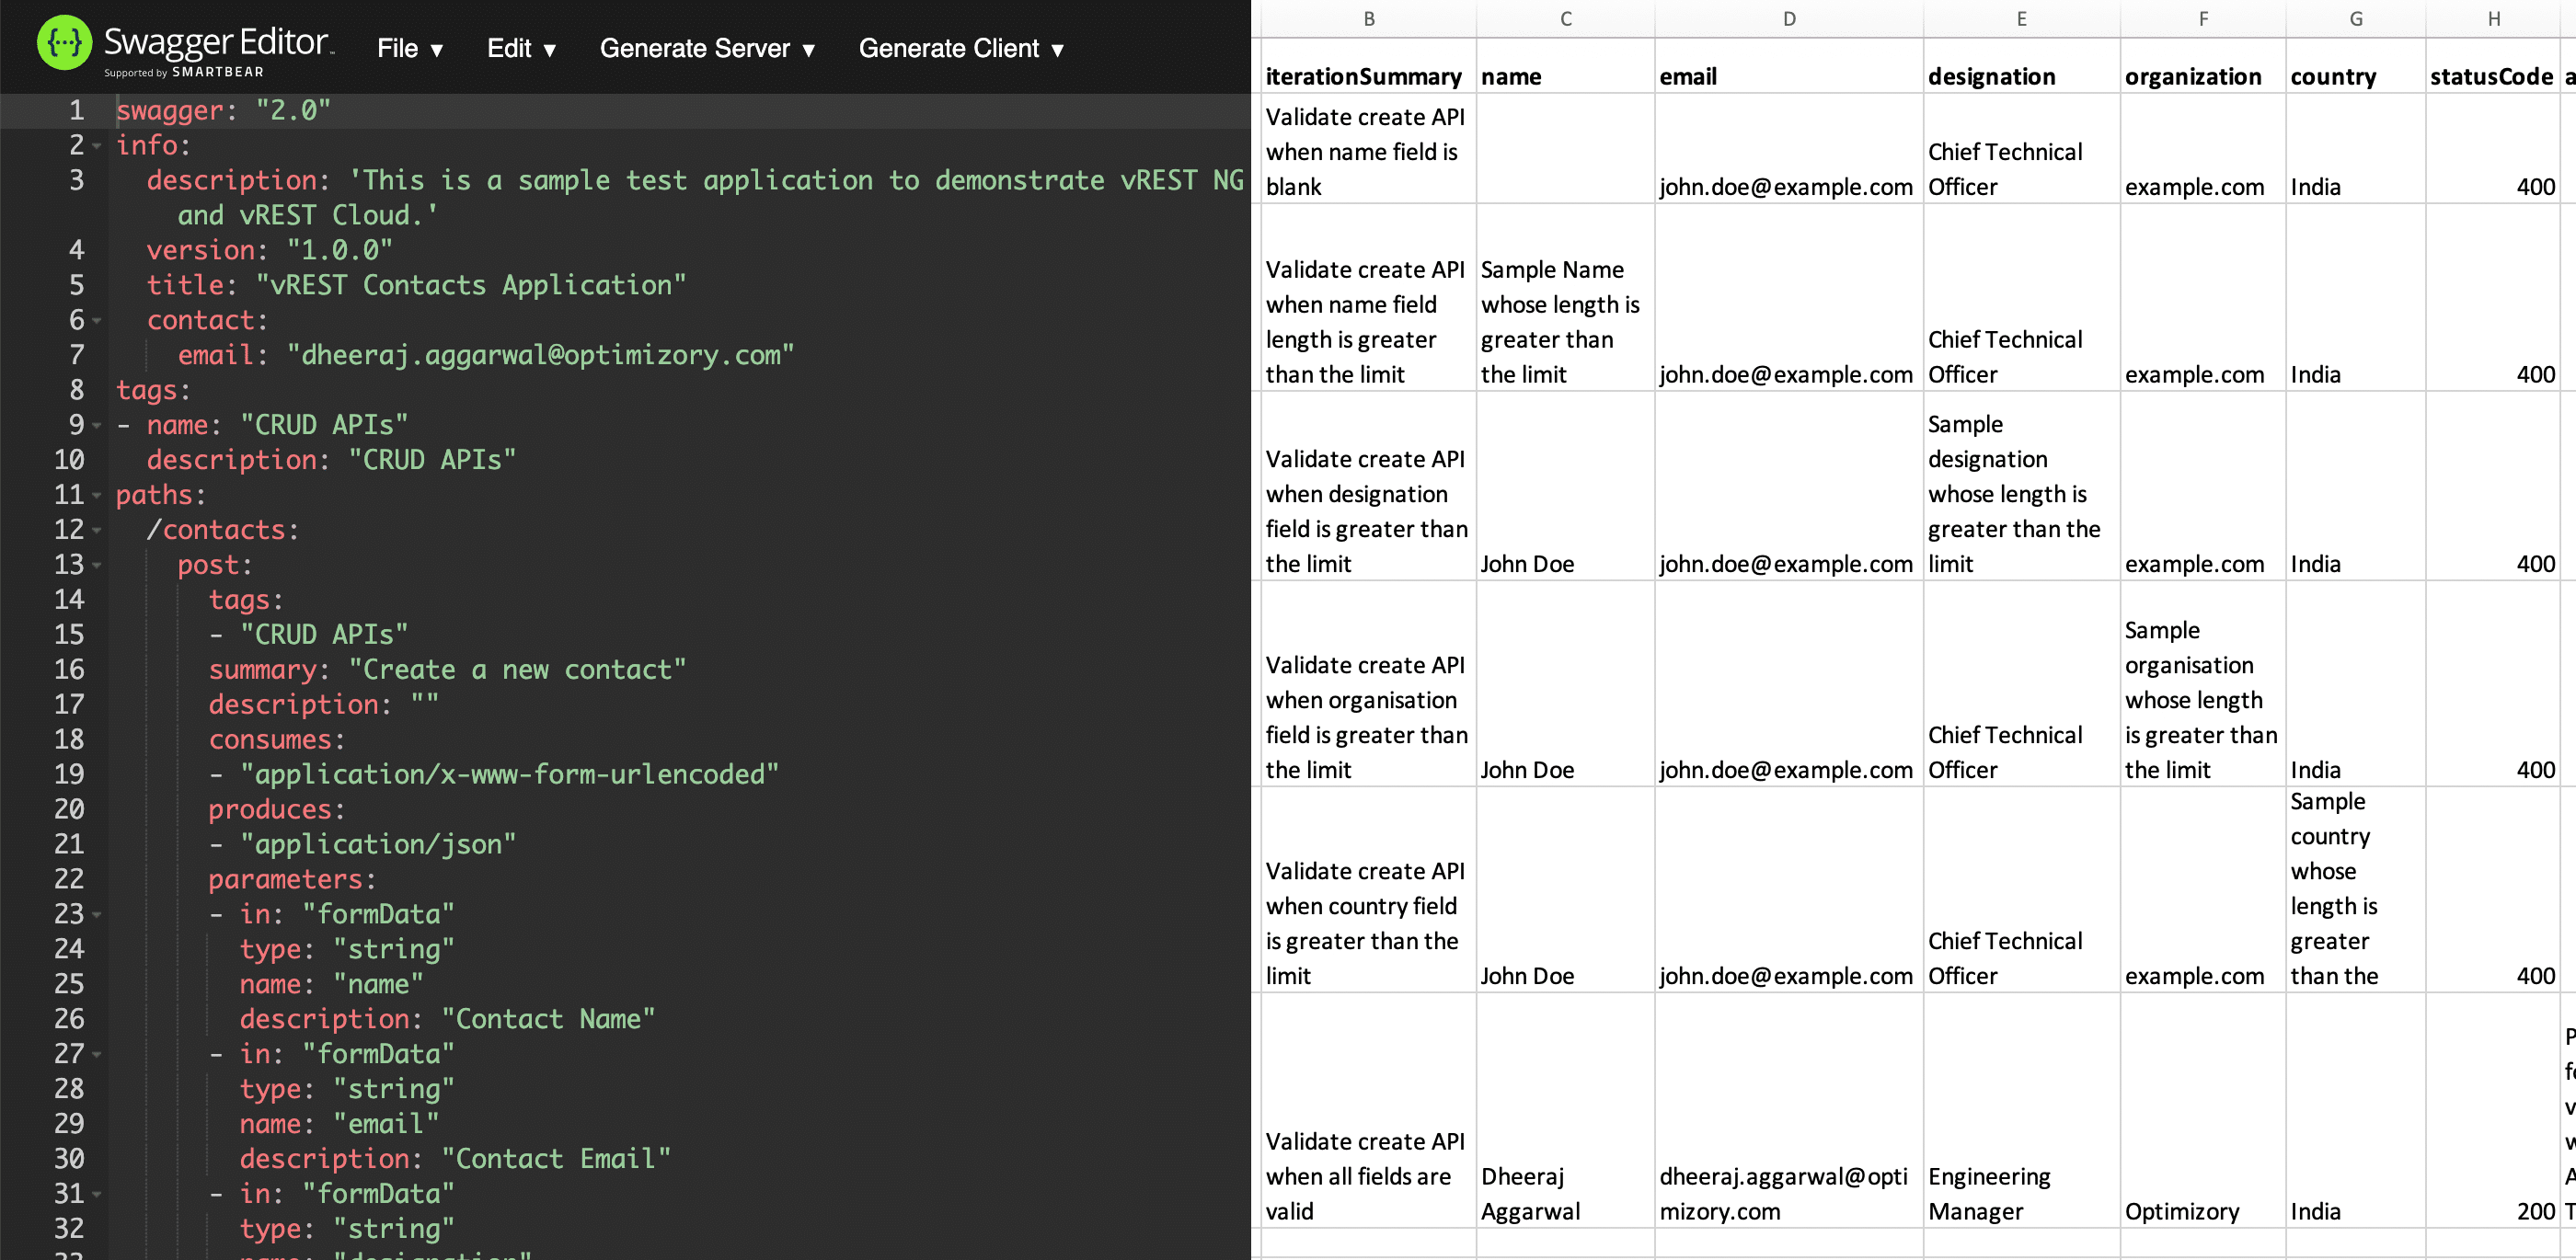 Swagger + Excel Sheets, a wonderful way of validating REST APIs